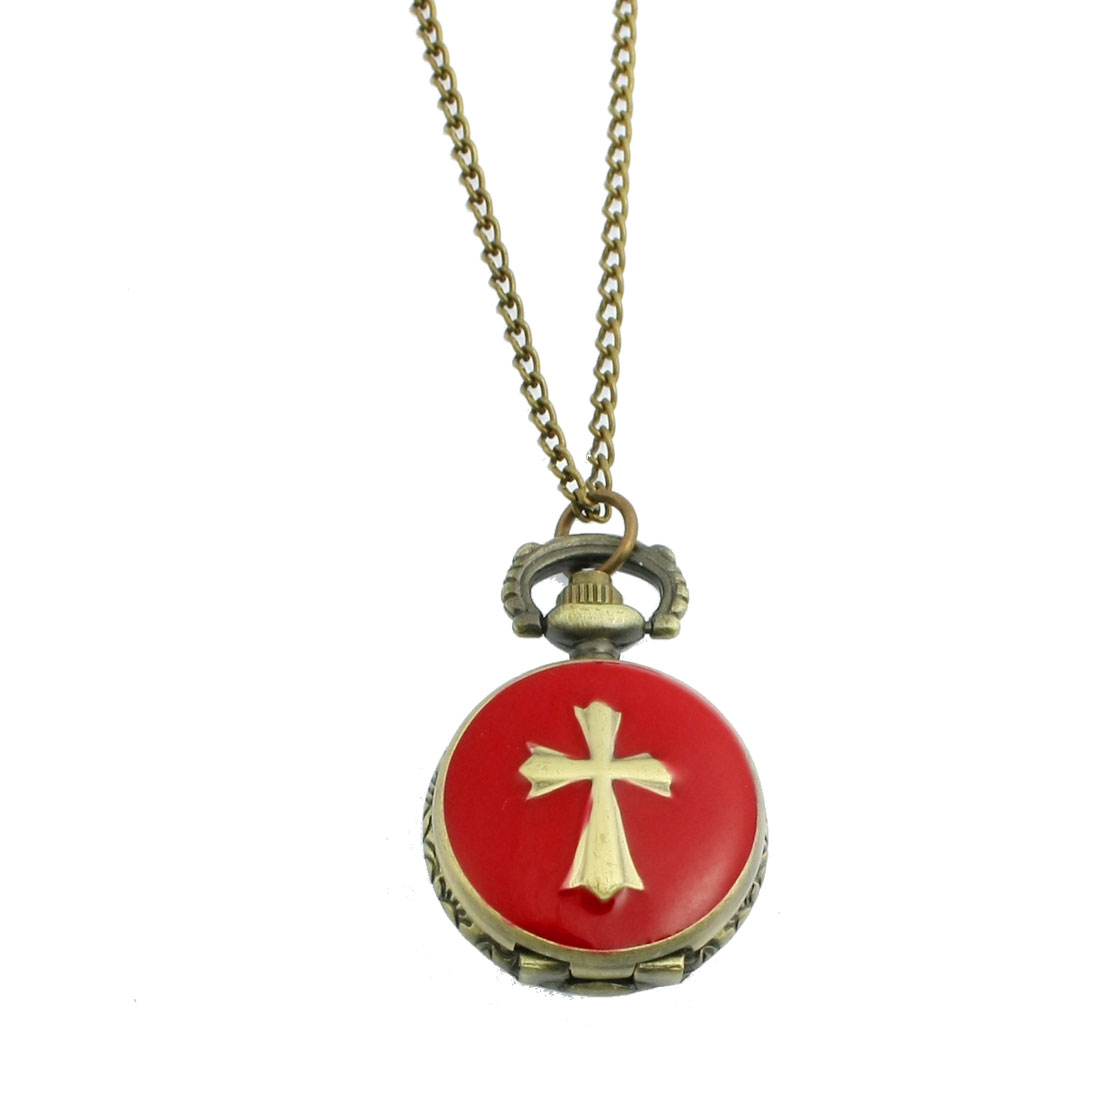 Ladies Metal Round Case Crossed Shape Pendant Necklace Watch Bronze Tone Red